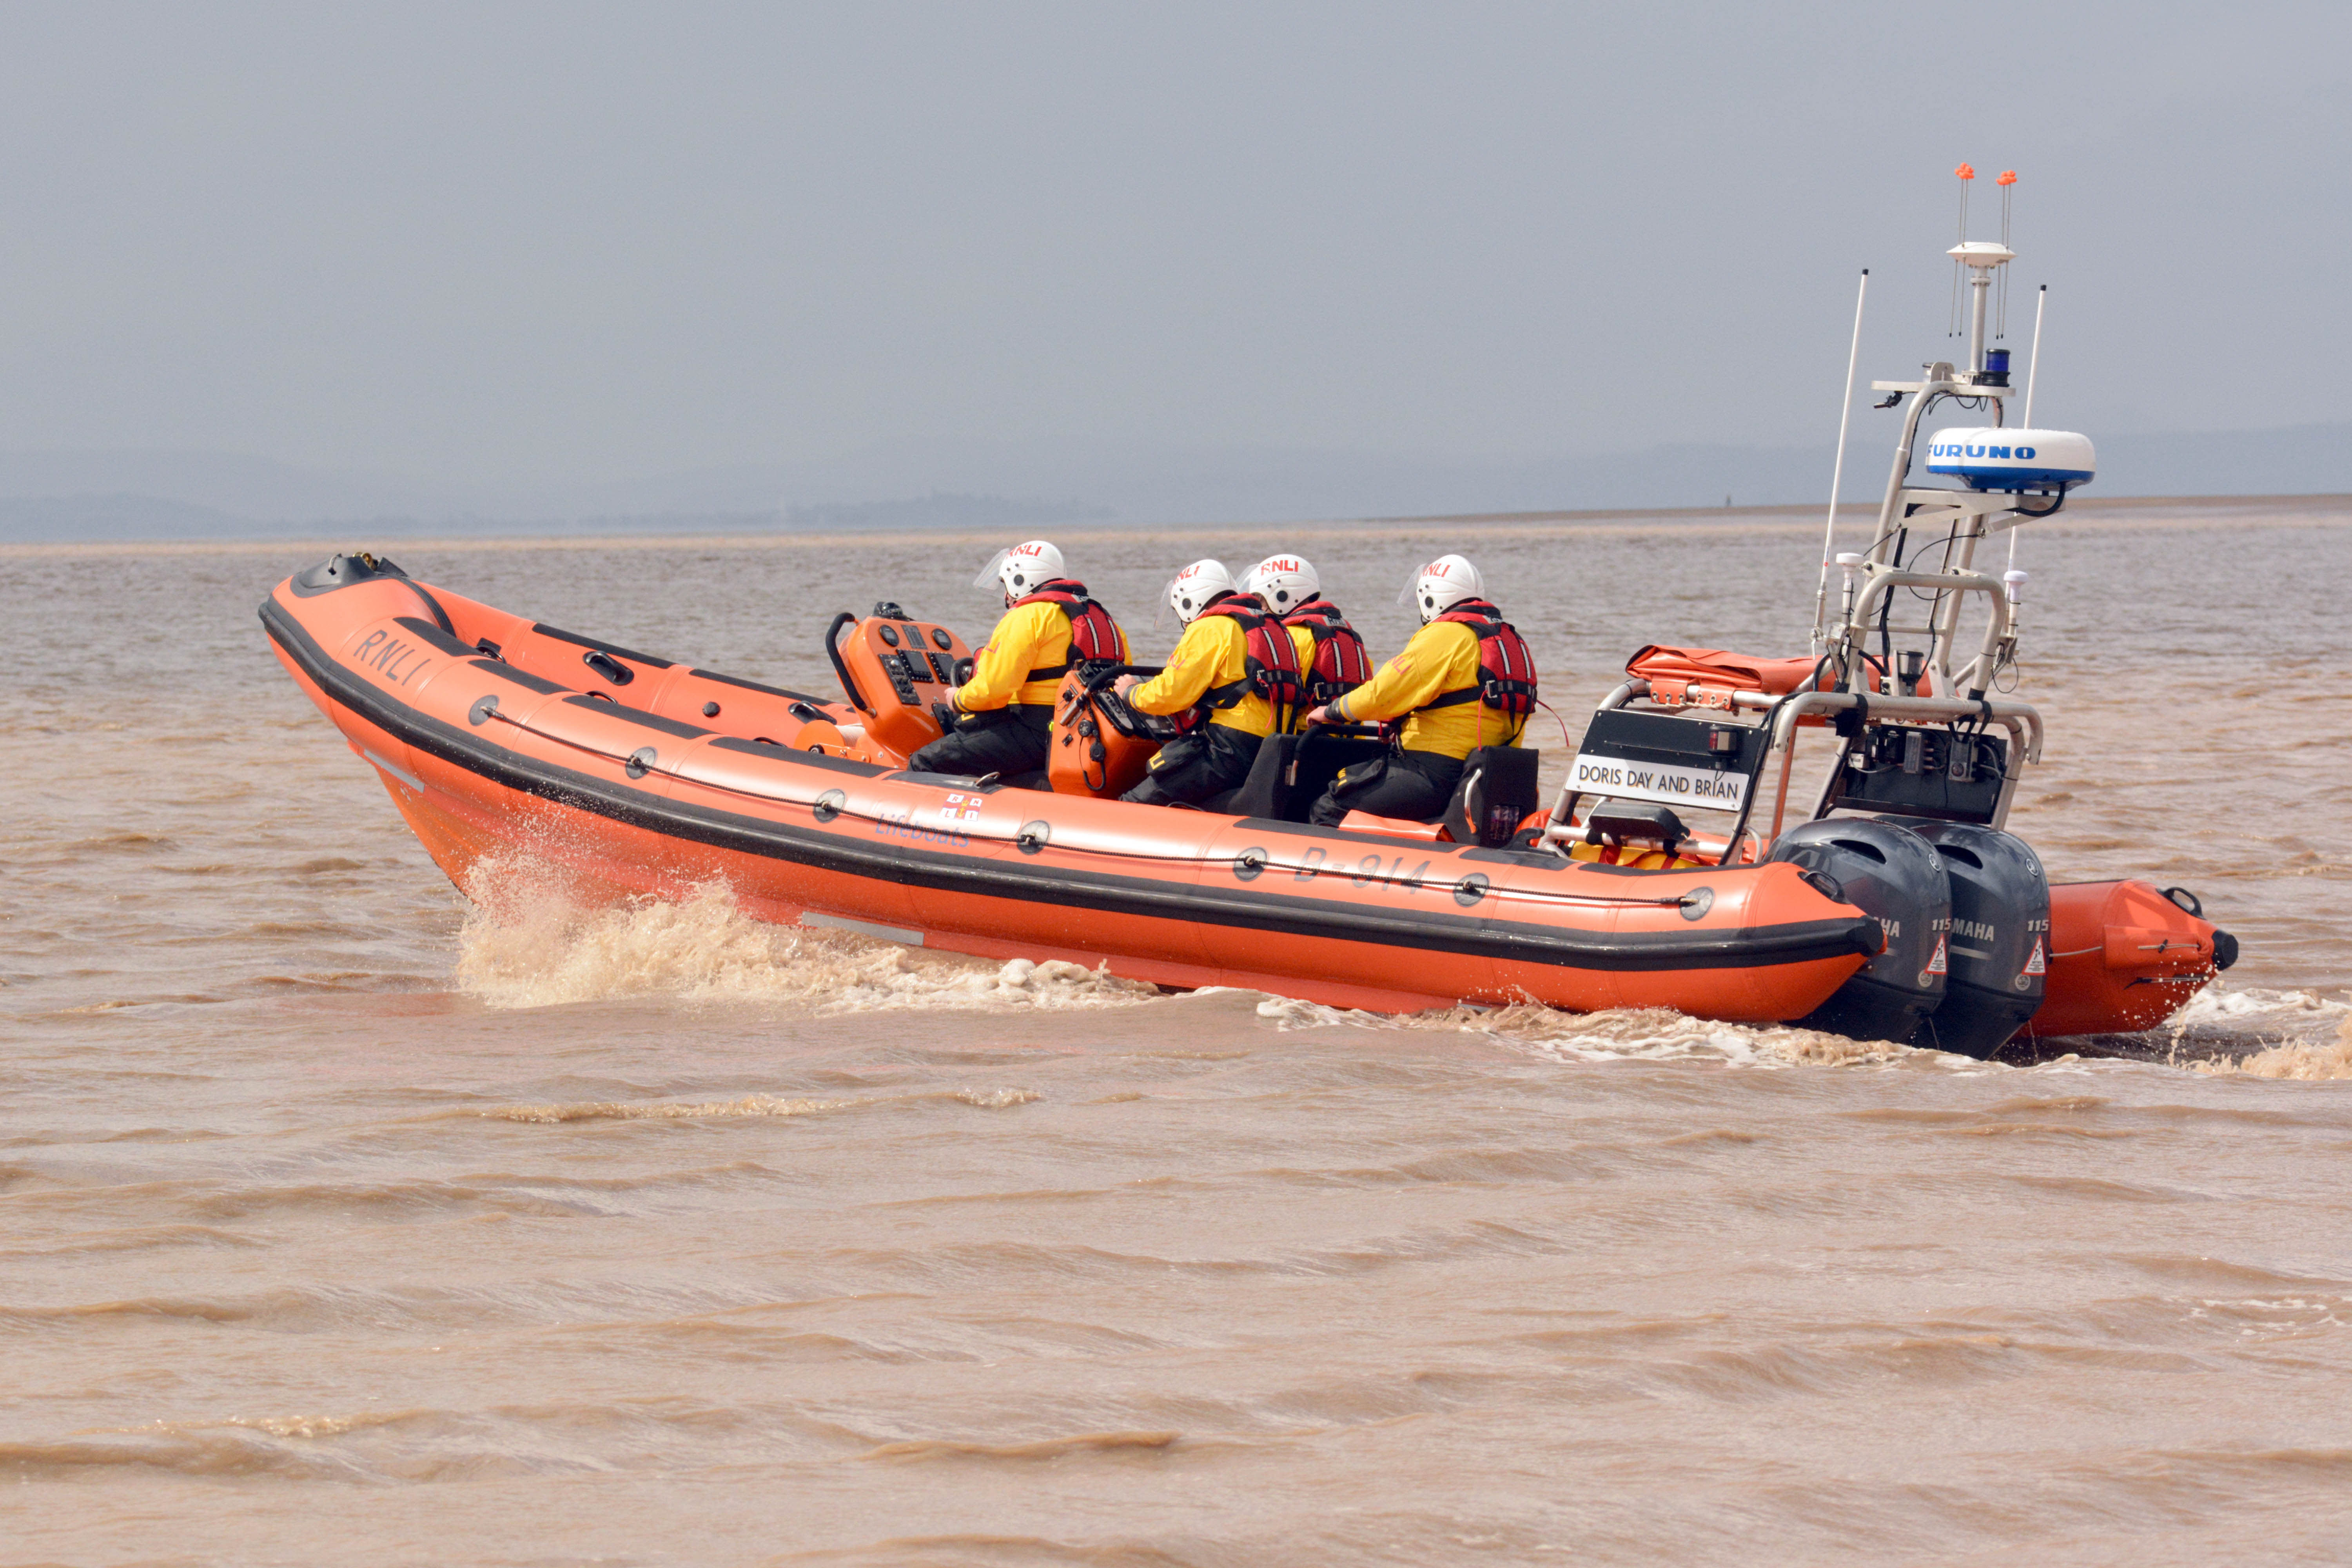 Library image of Burnham-on-Sea Atlantic 85 lifeboat 'Doris Day and Brian'